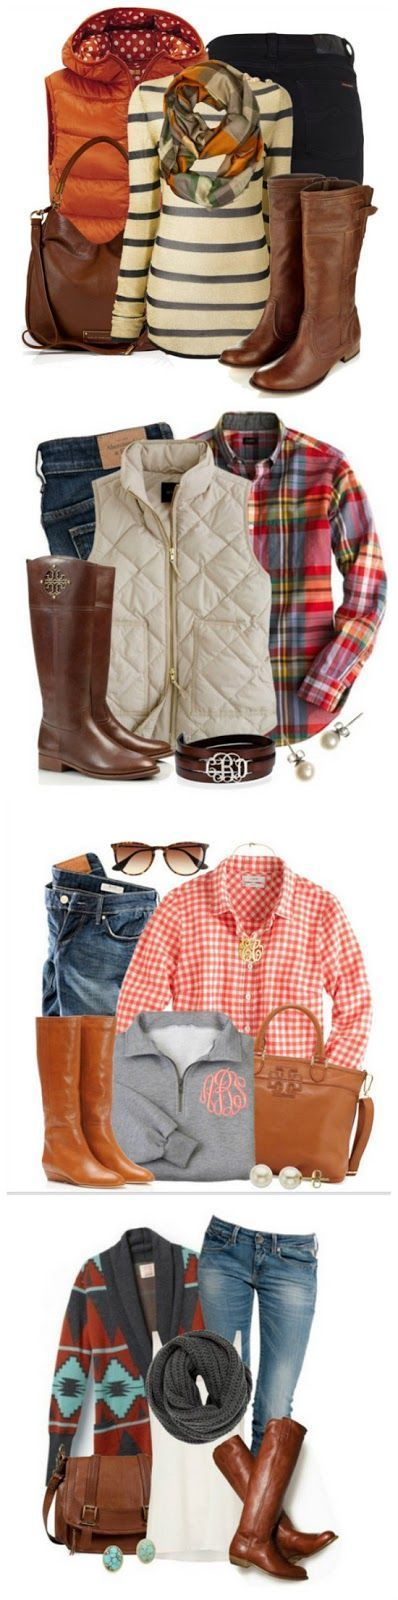 chrome hearts nails Cozy Fall Fashion  I love all these Fall Outfits Brown boots Aztec sweater Puffy vest